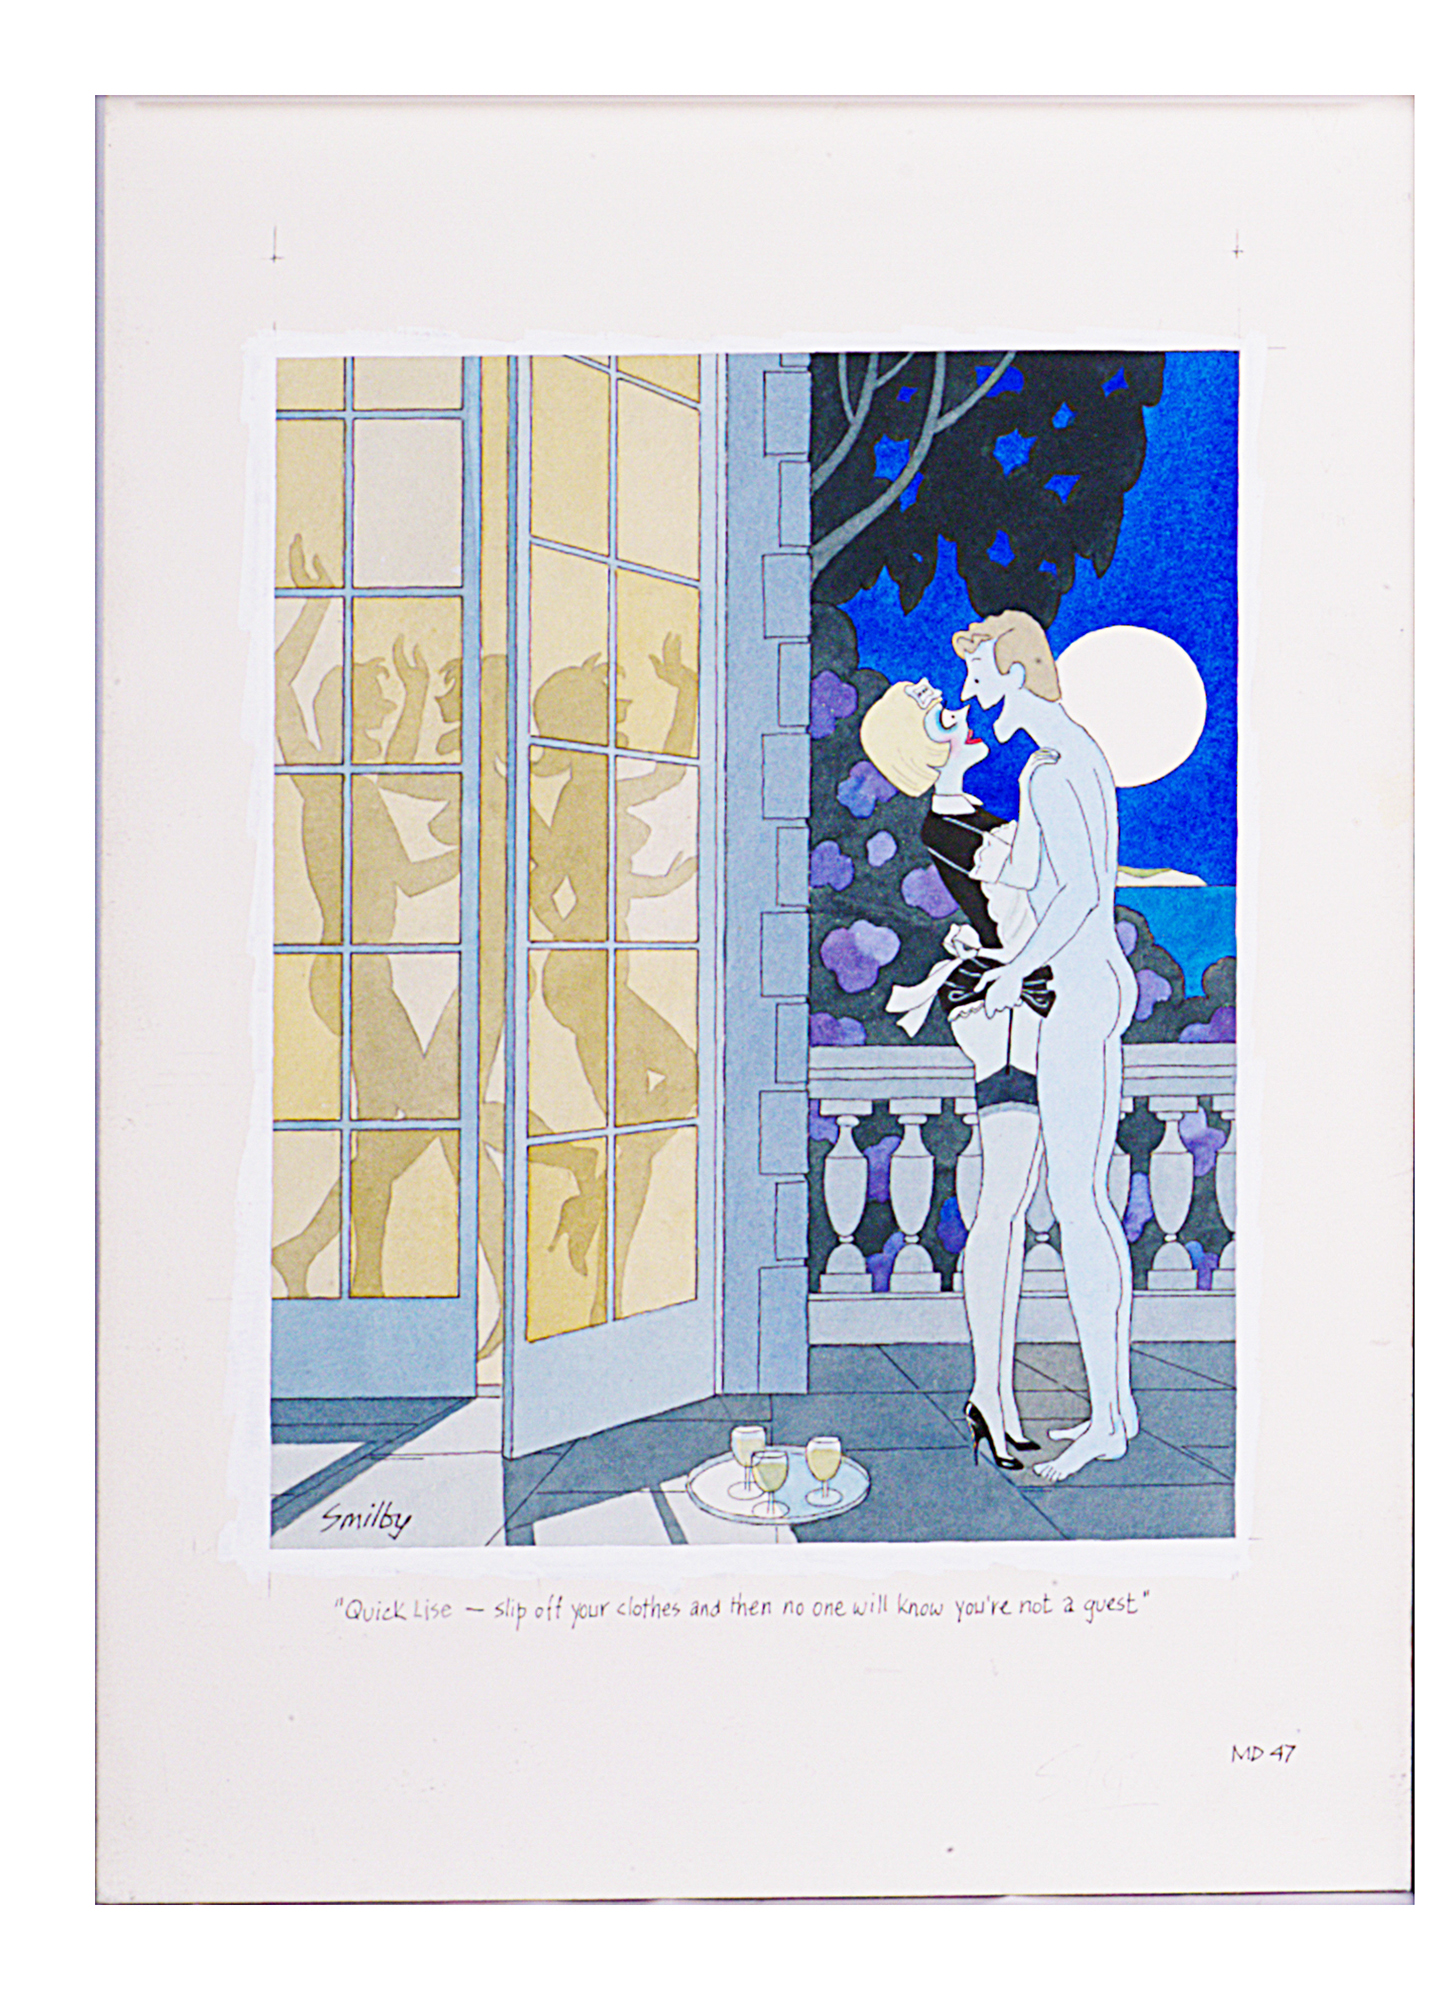 Lot 27 - Smilby, Francis Wilford-Smith 'Quick Lise - slip off your clothes and then no one will know ..'